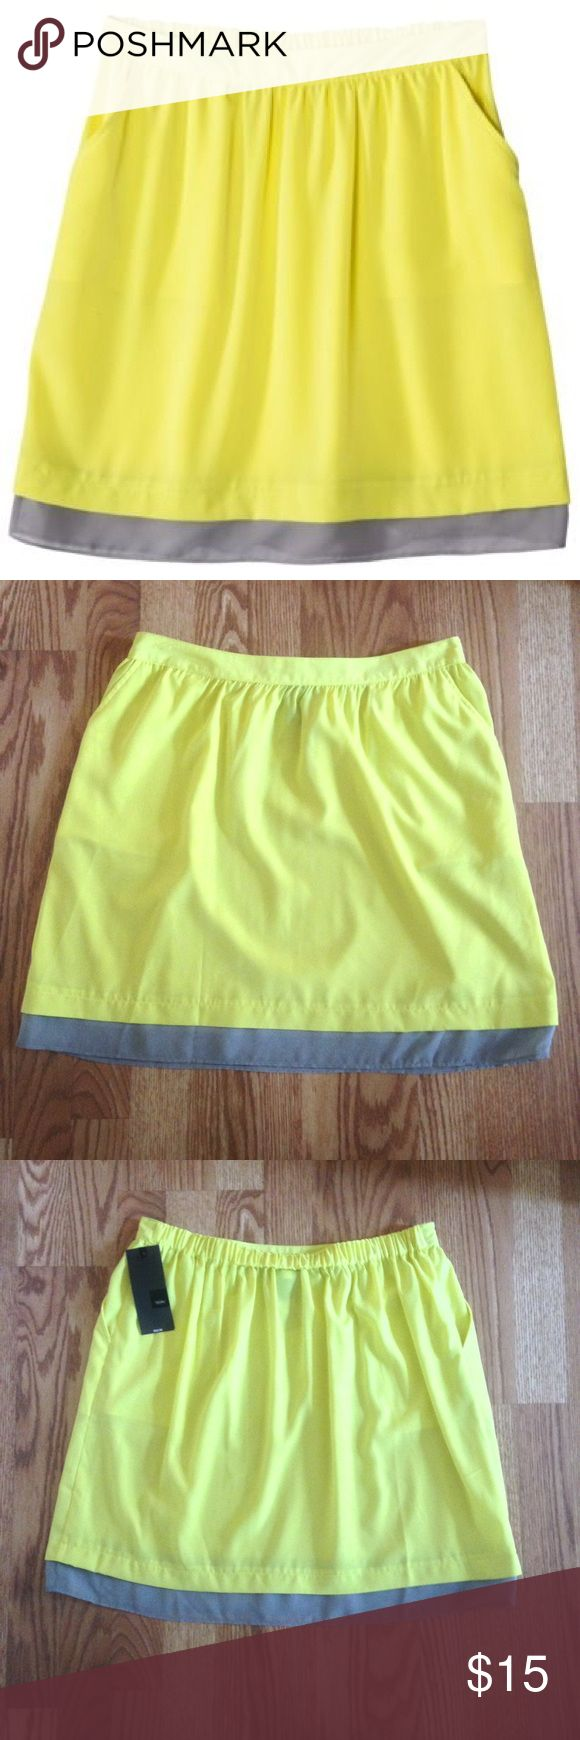 "NWT Mossimo Neon Yellow Skirt w/ pockets NWT Neon Yellow Skirt with grey chiffon trim from Mossimo. Size: L. Color: Neon Yellow and grey. Elastic waist, pockets, 100% polyester, length of yellow fabric approx 17.5"", total length approx 18.5"". Mossimo Supply Co Skirts"